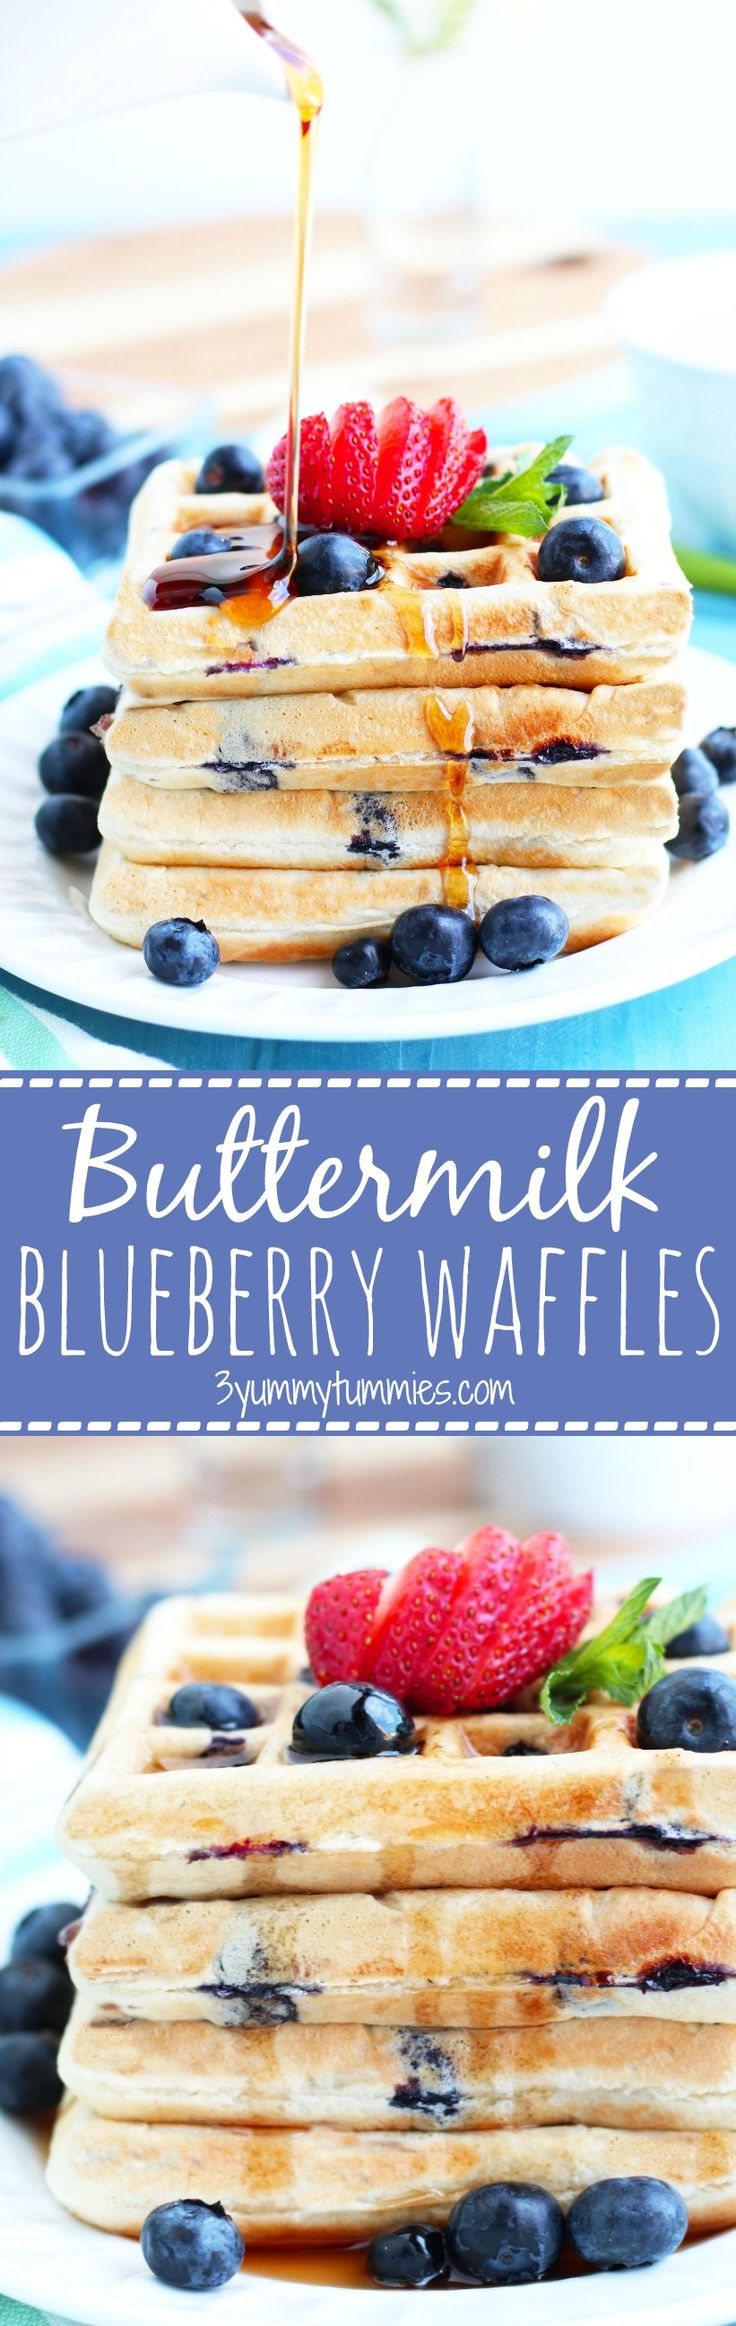 These Buttermilk Blueberry Waffles are made from scratch and SO much better than the mix!